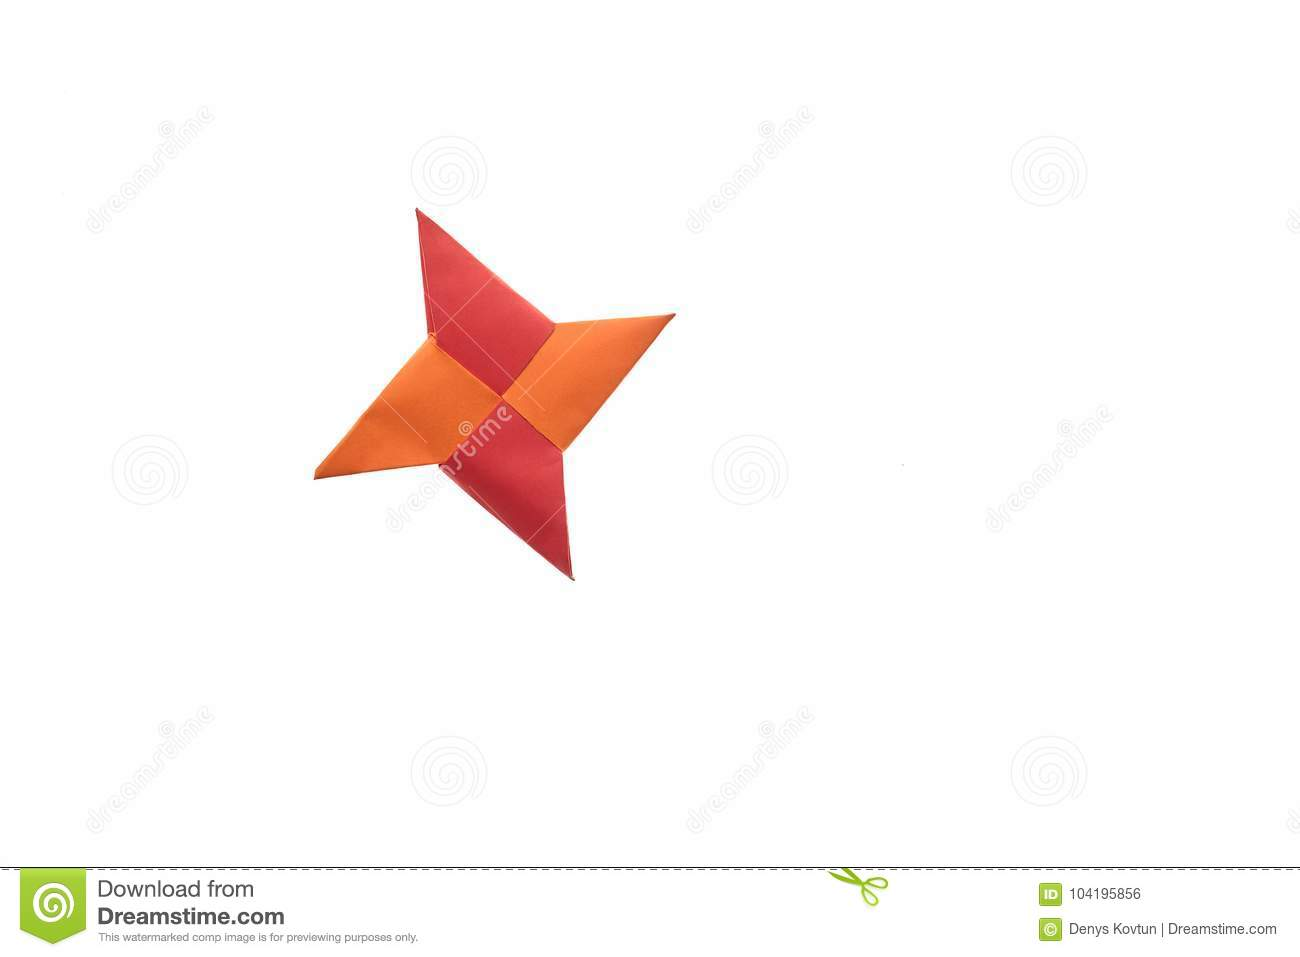 How to fold a origami 4 pointed star | 957x1300